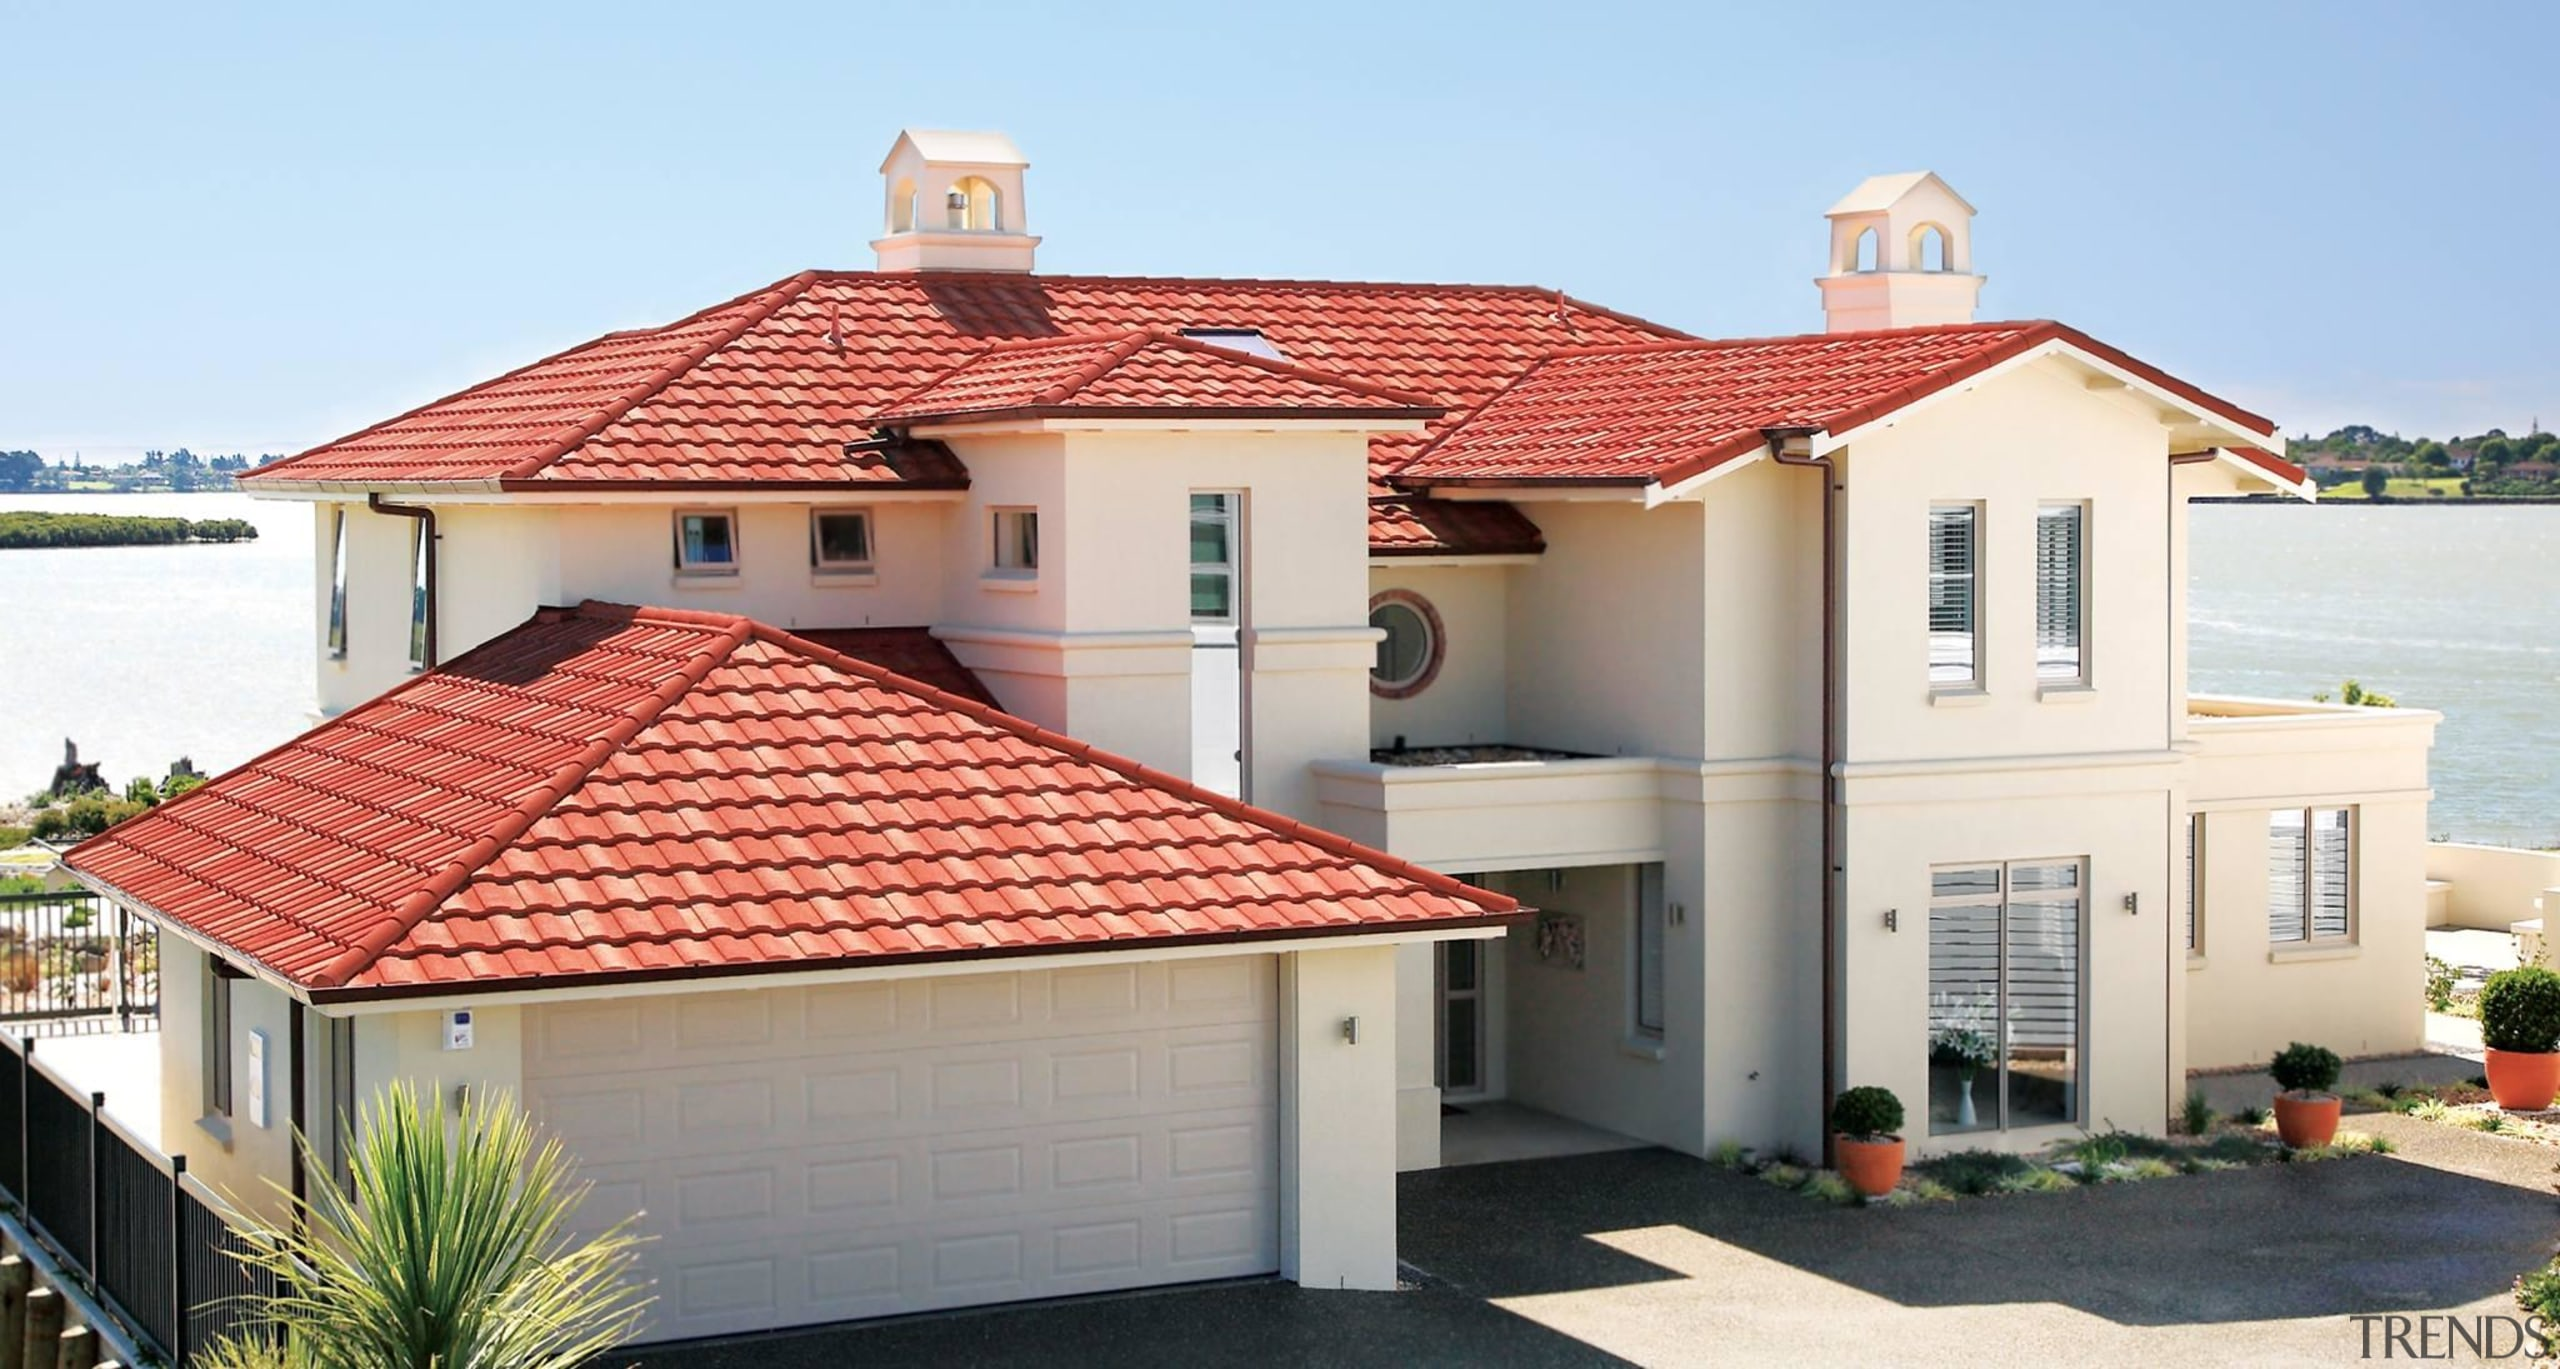 Increase your home's long-term value with quality roofing architecture, building, cottage, estate, facade, home, house, property, real estate, residential area, roof, white